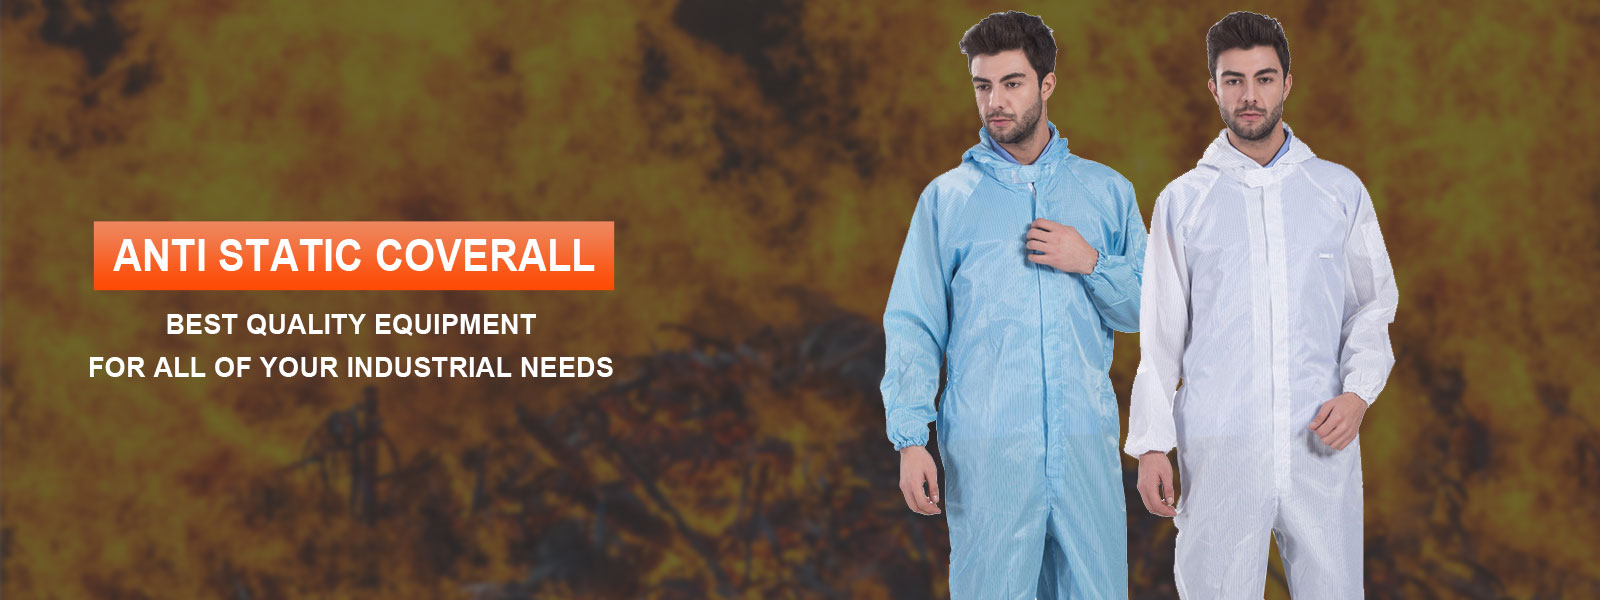 Anti Static Coverall Manufacturers in Bolivia